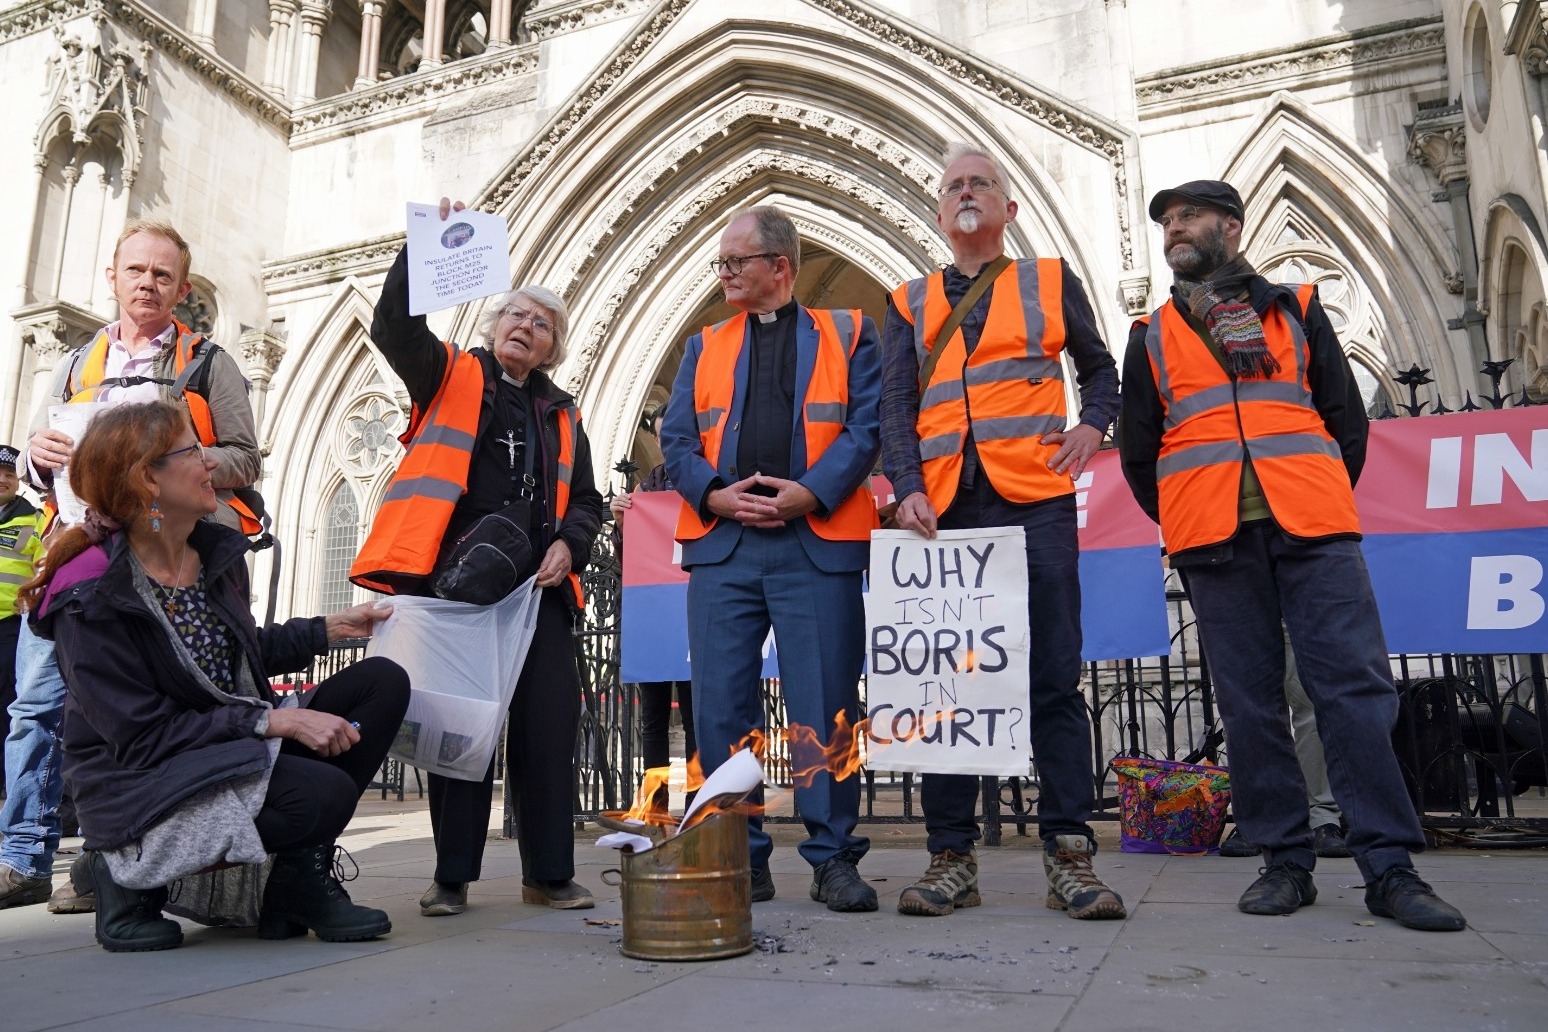 Insulate Britain protesters burn injunctions outside court as ban extended